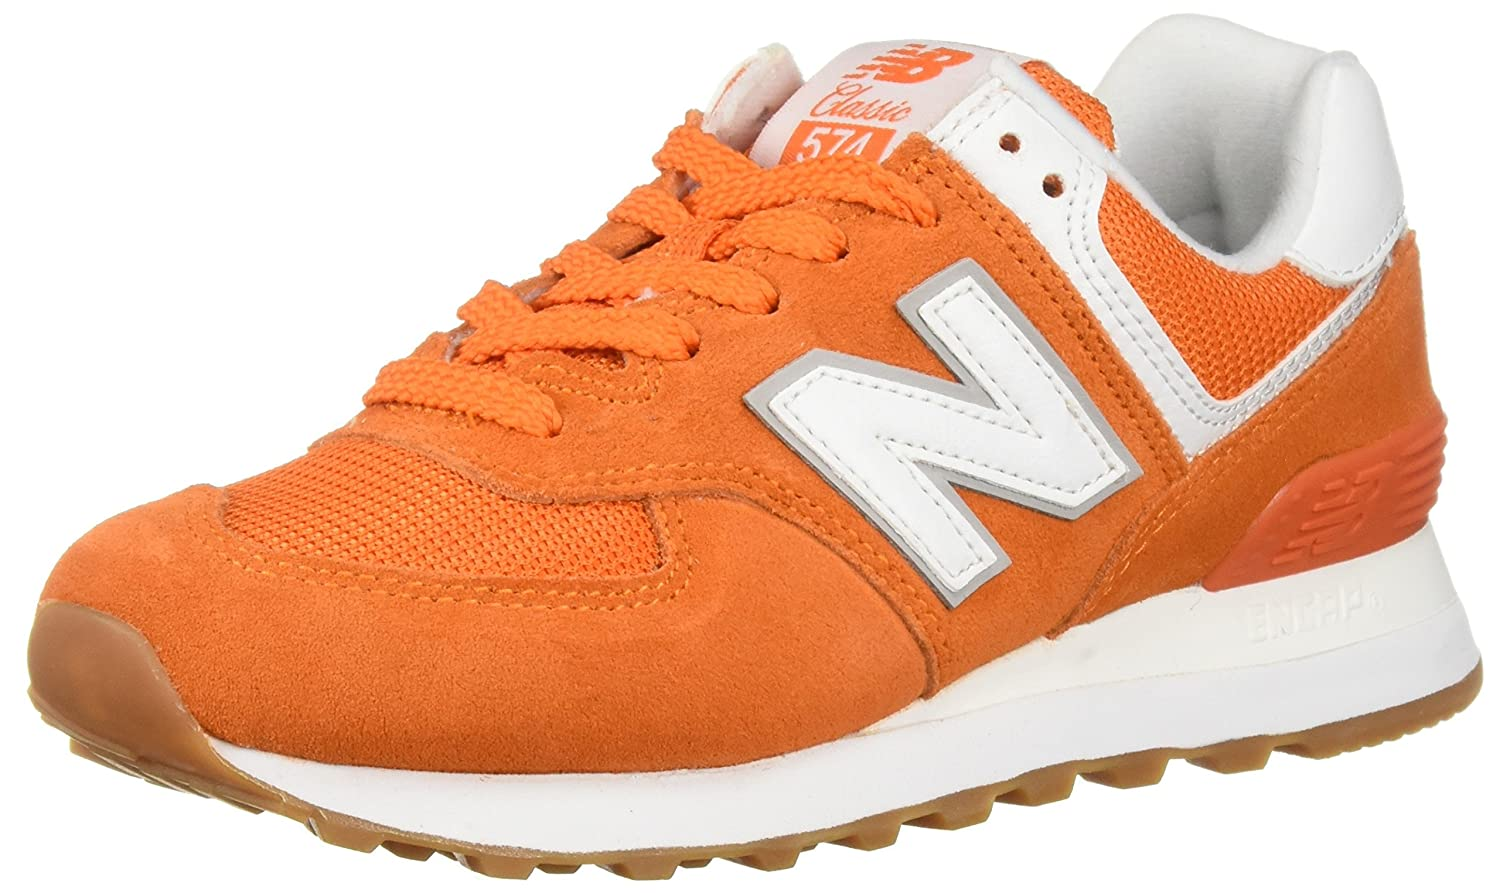 New Balance Women's 574v2 Sneaker B0751RXKVD 5 B(M) US|Varsity Orange/Overcast